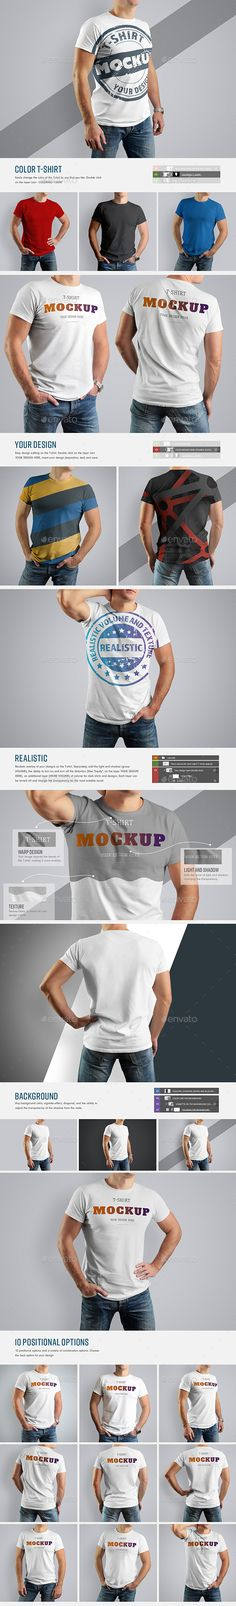 Buy 10 Mockup T-Shirt (Updated) by Oleg_Design on GraphicRiver. - Templates of mocup t-shirt on the body of an athletic man. - Design is easy in customizing images design, backgroun. Design Typography, Design Logo, Graphic Design, T Shirt Design Template, Free Photoshop, Shirt Mockup, Athletic Men, Colorful Backgrounds, Colorful Shirts